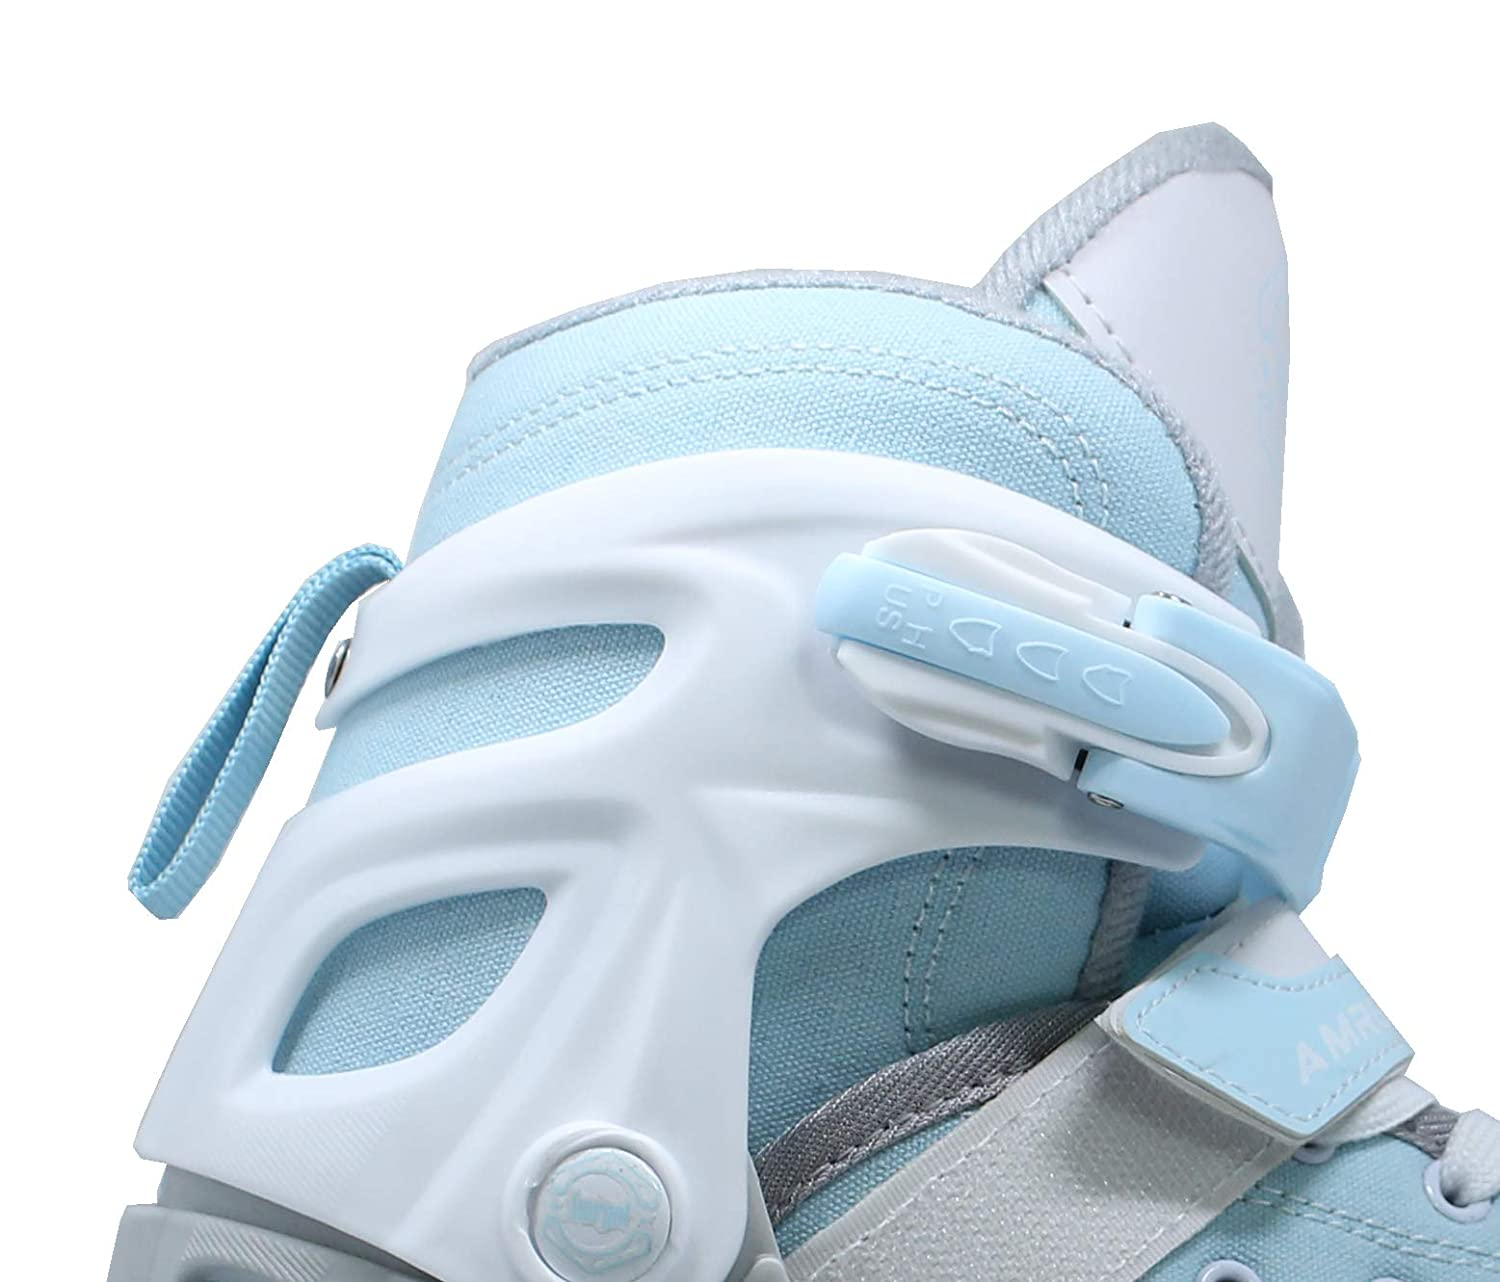 WiiSHAM Fun Roll Adjustable Canvas Roller Skates with Four Piles